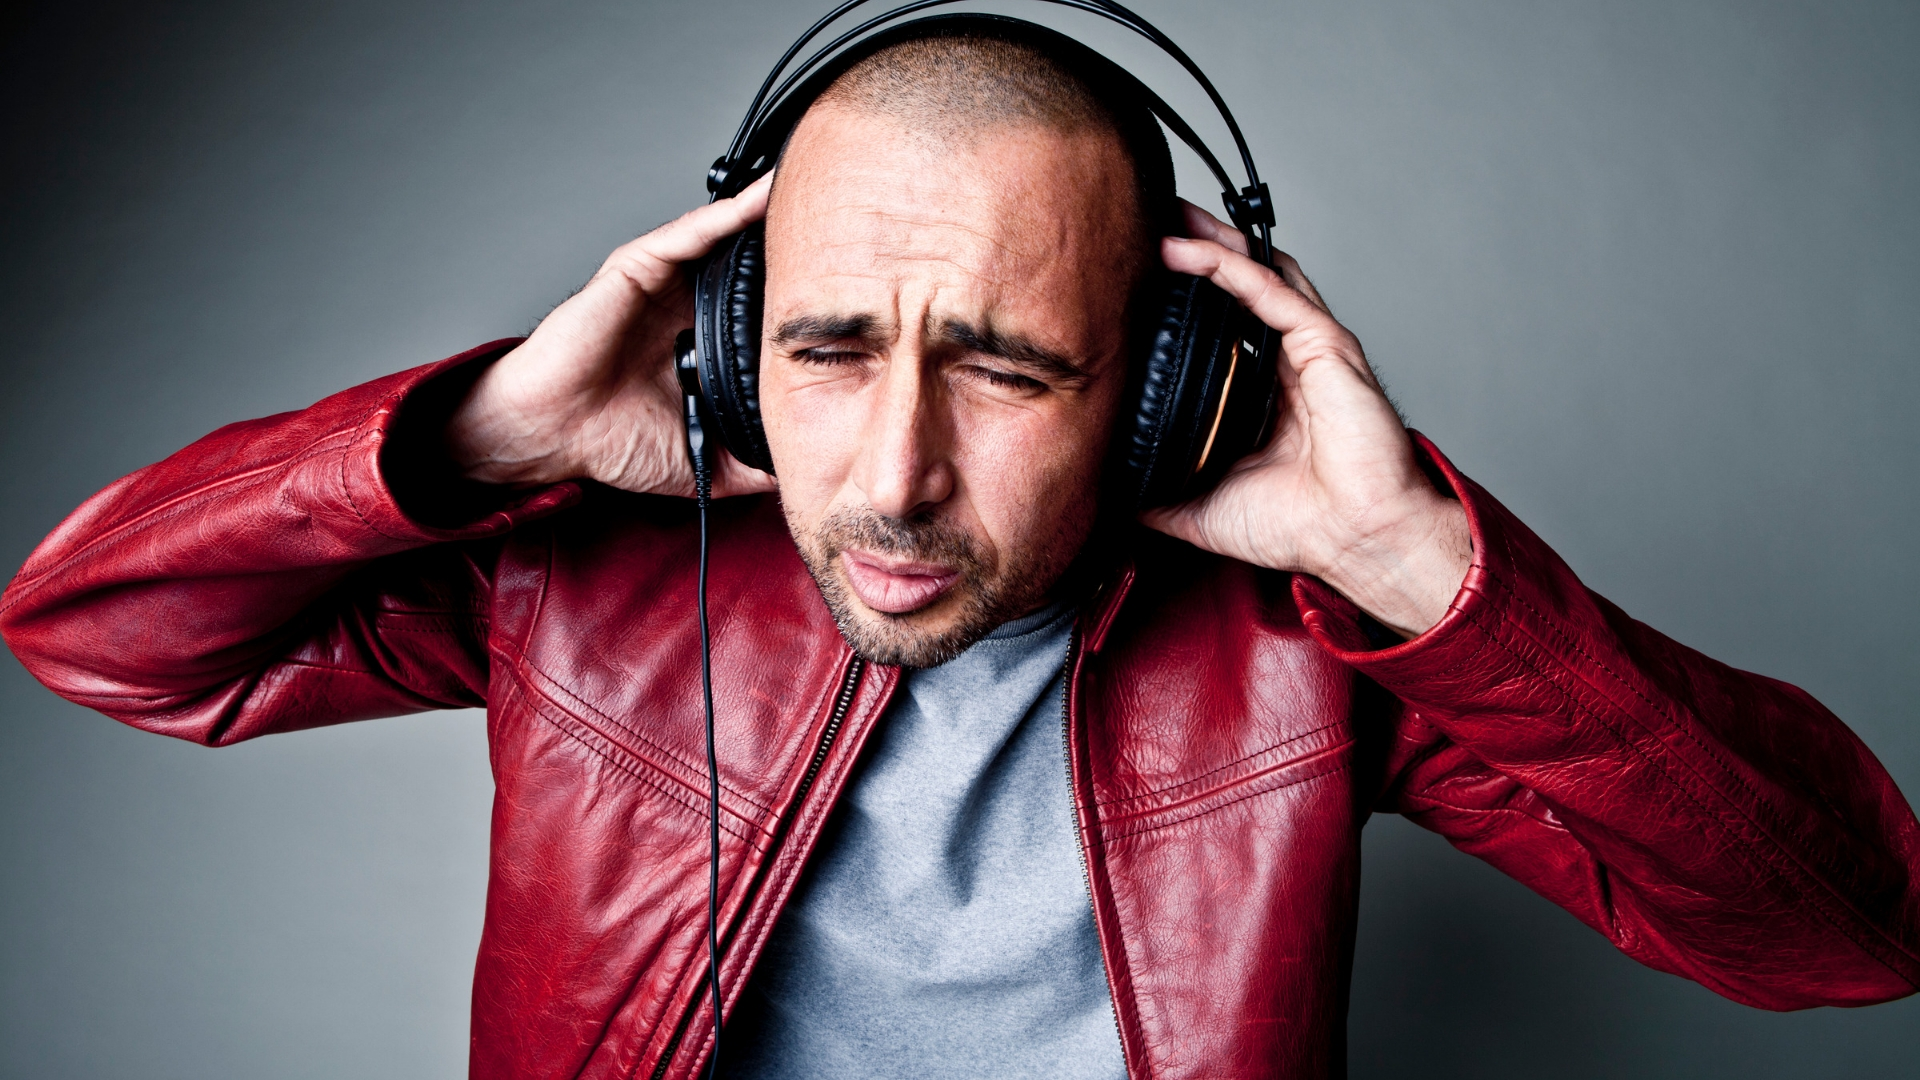 listen music bad for ears and brain